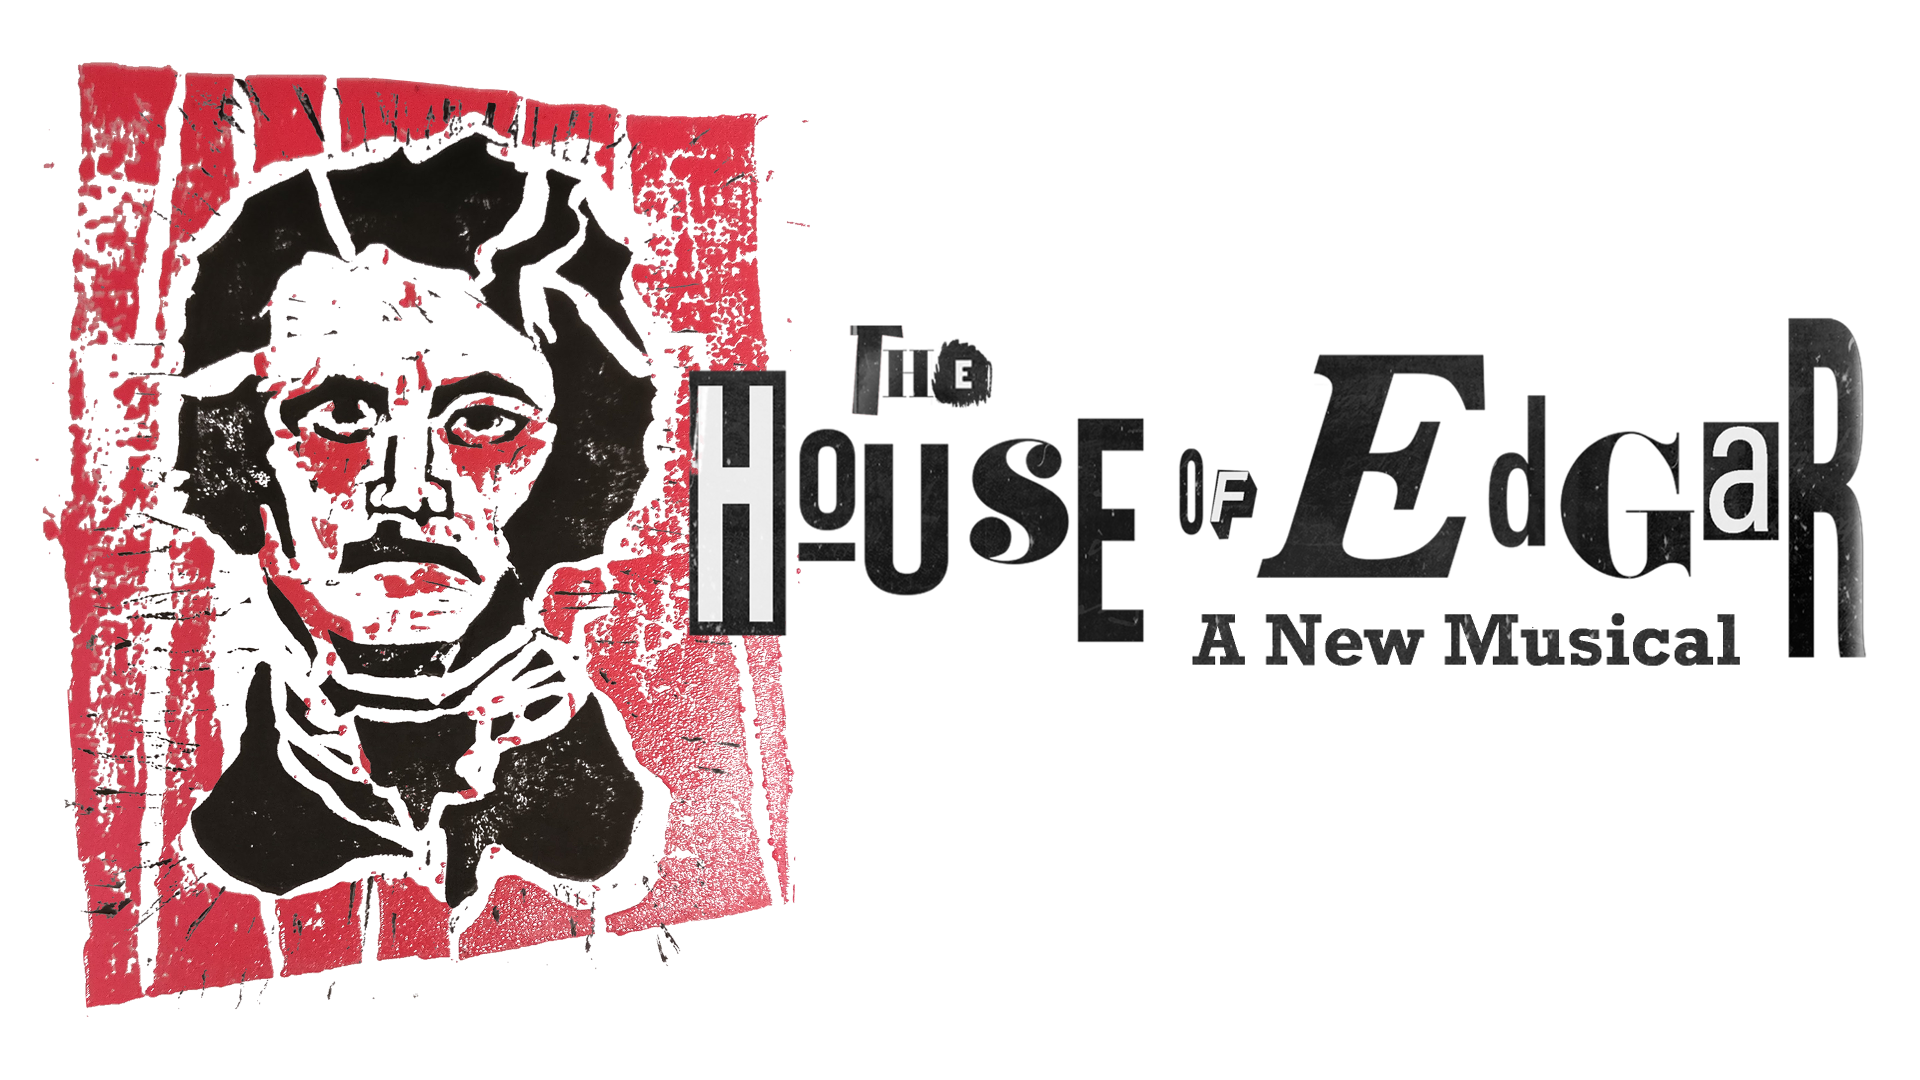 The House of Edgar